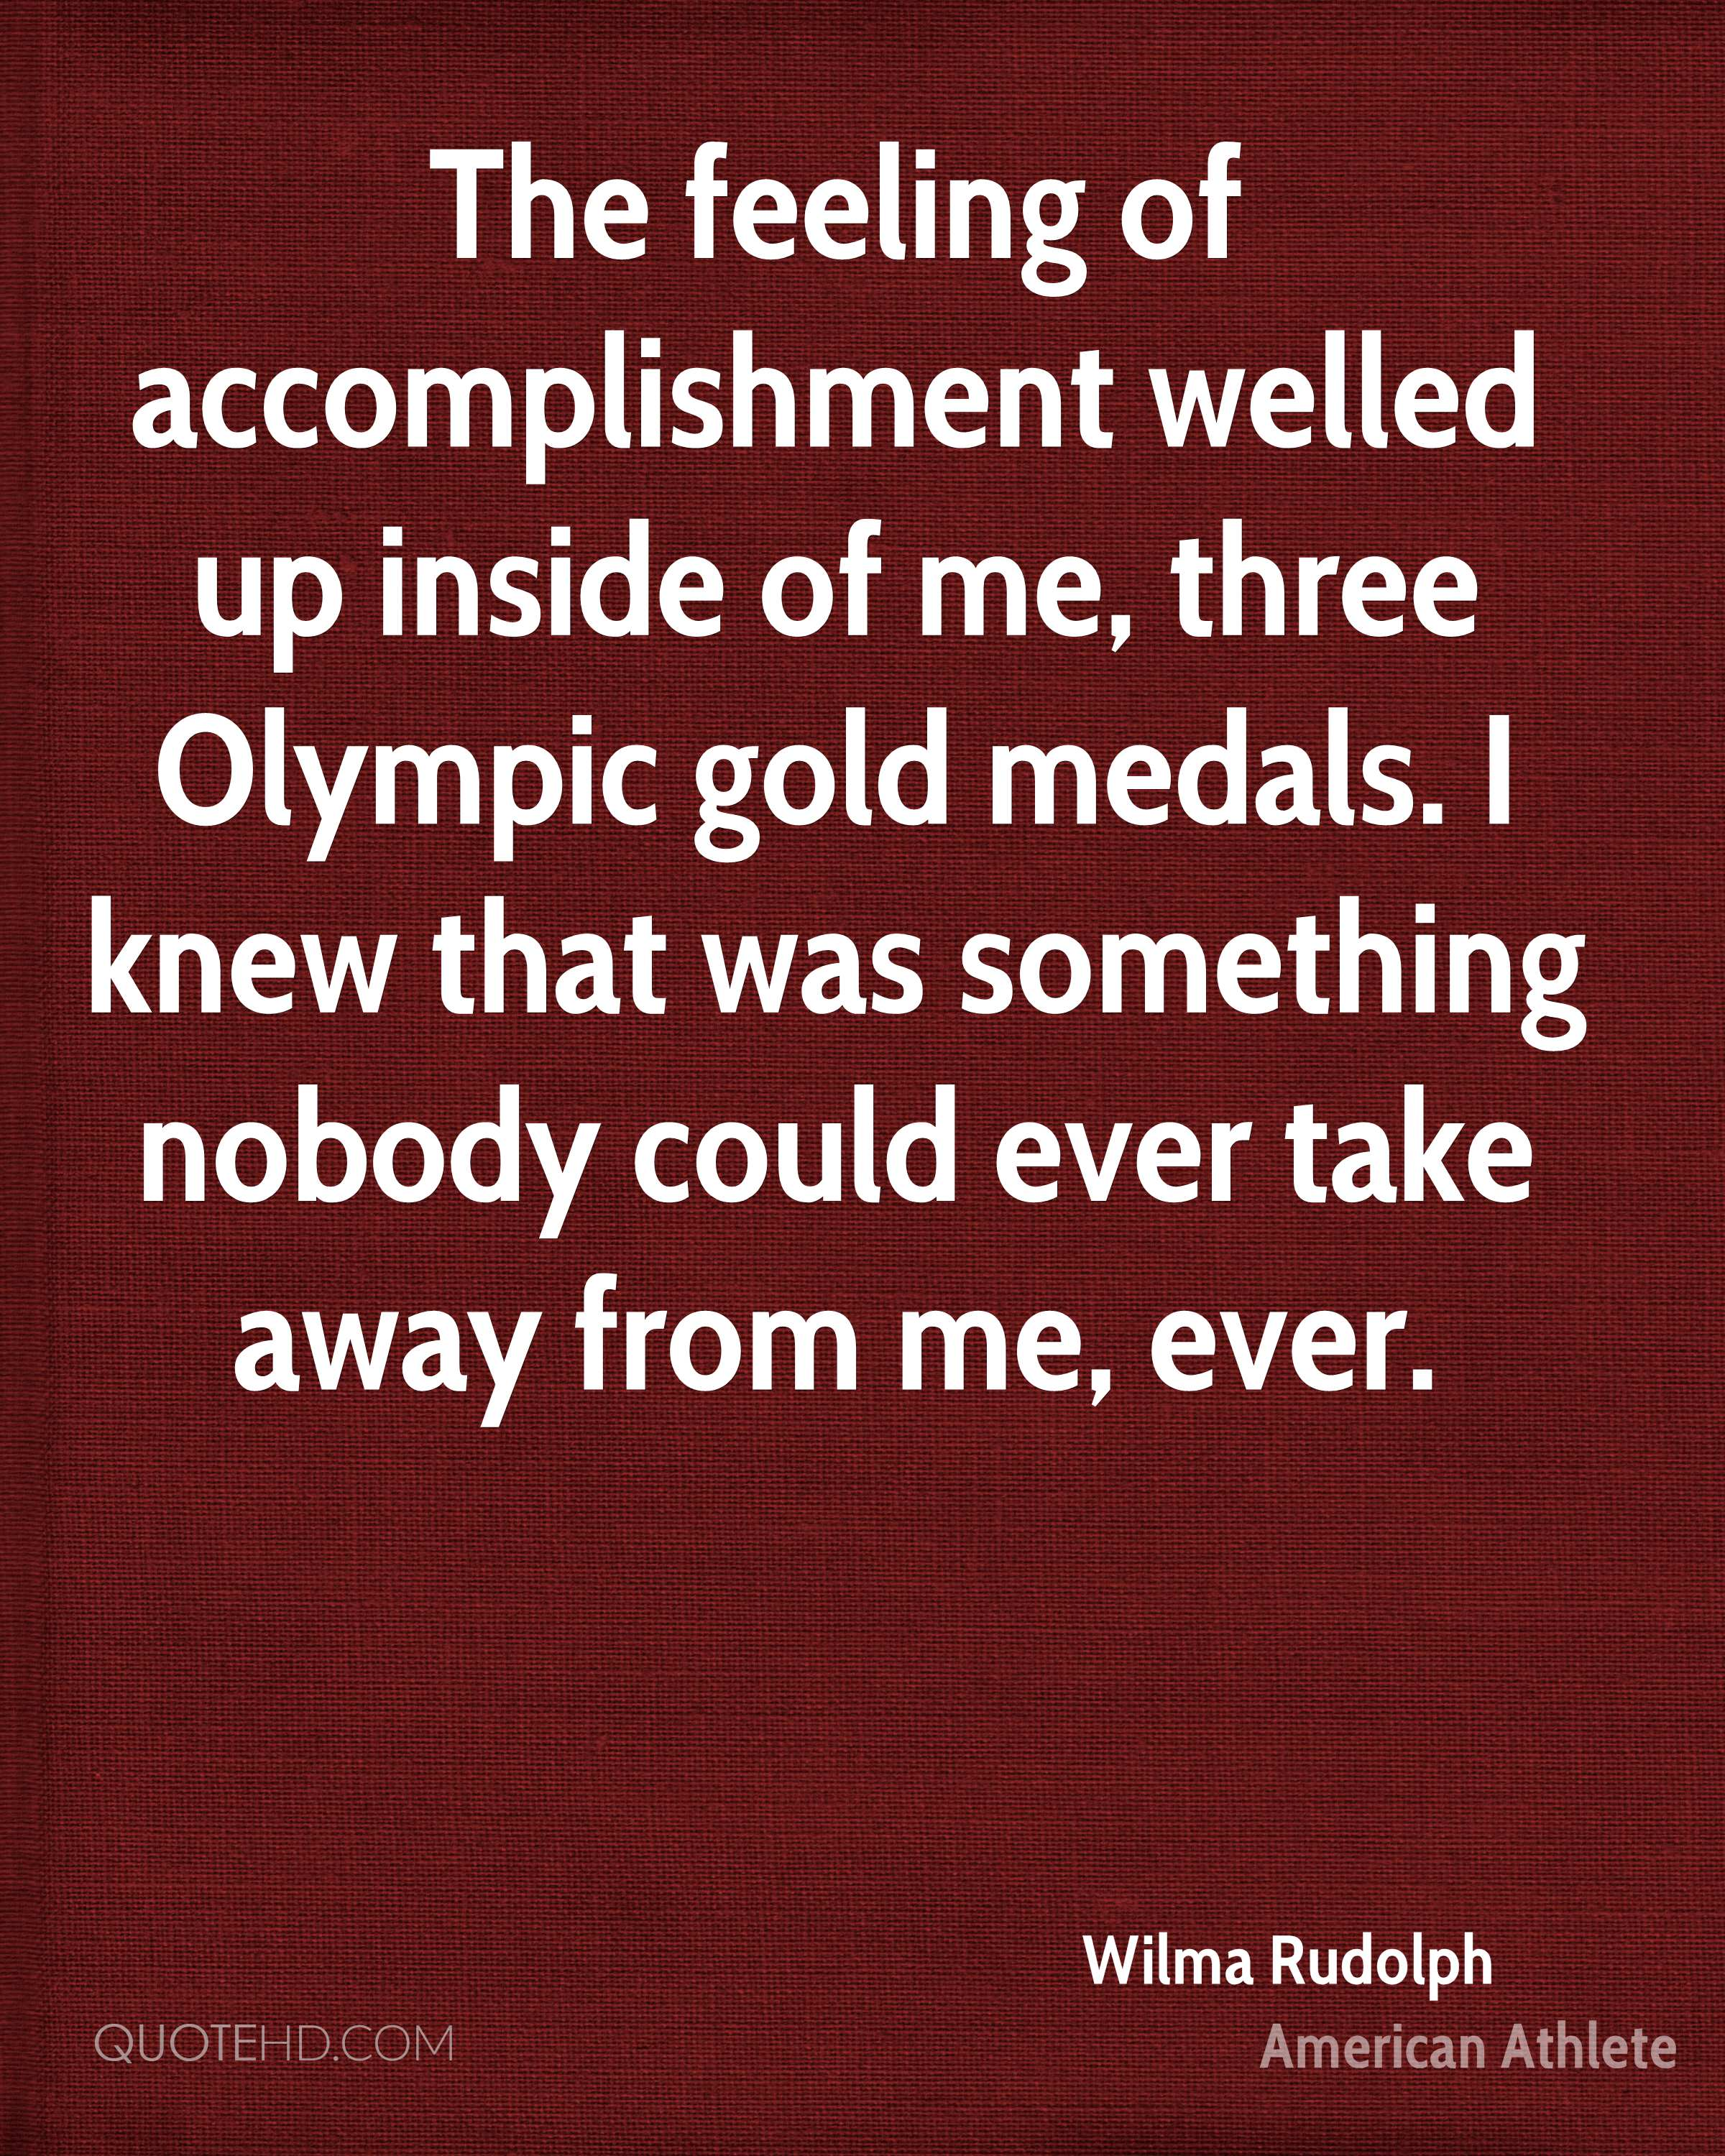 The feeling of accomplishment welled up inside of me, three Olympic gold medals. I knew that was something nobody could ever take away from me, ever.